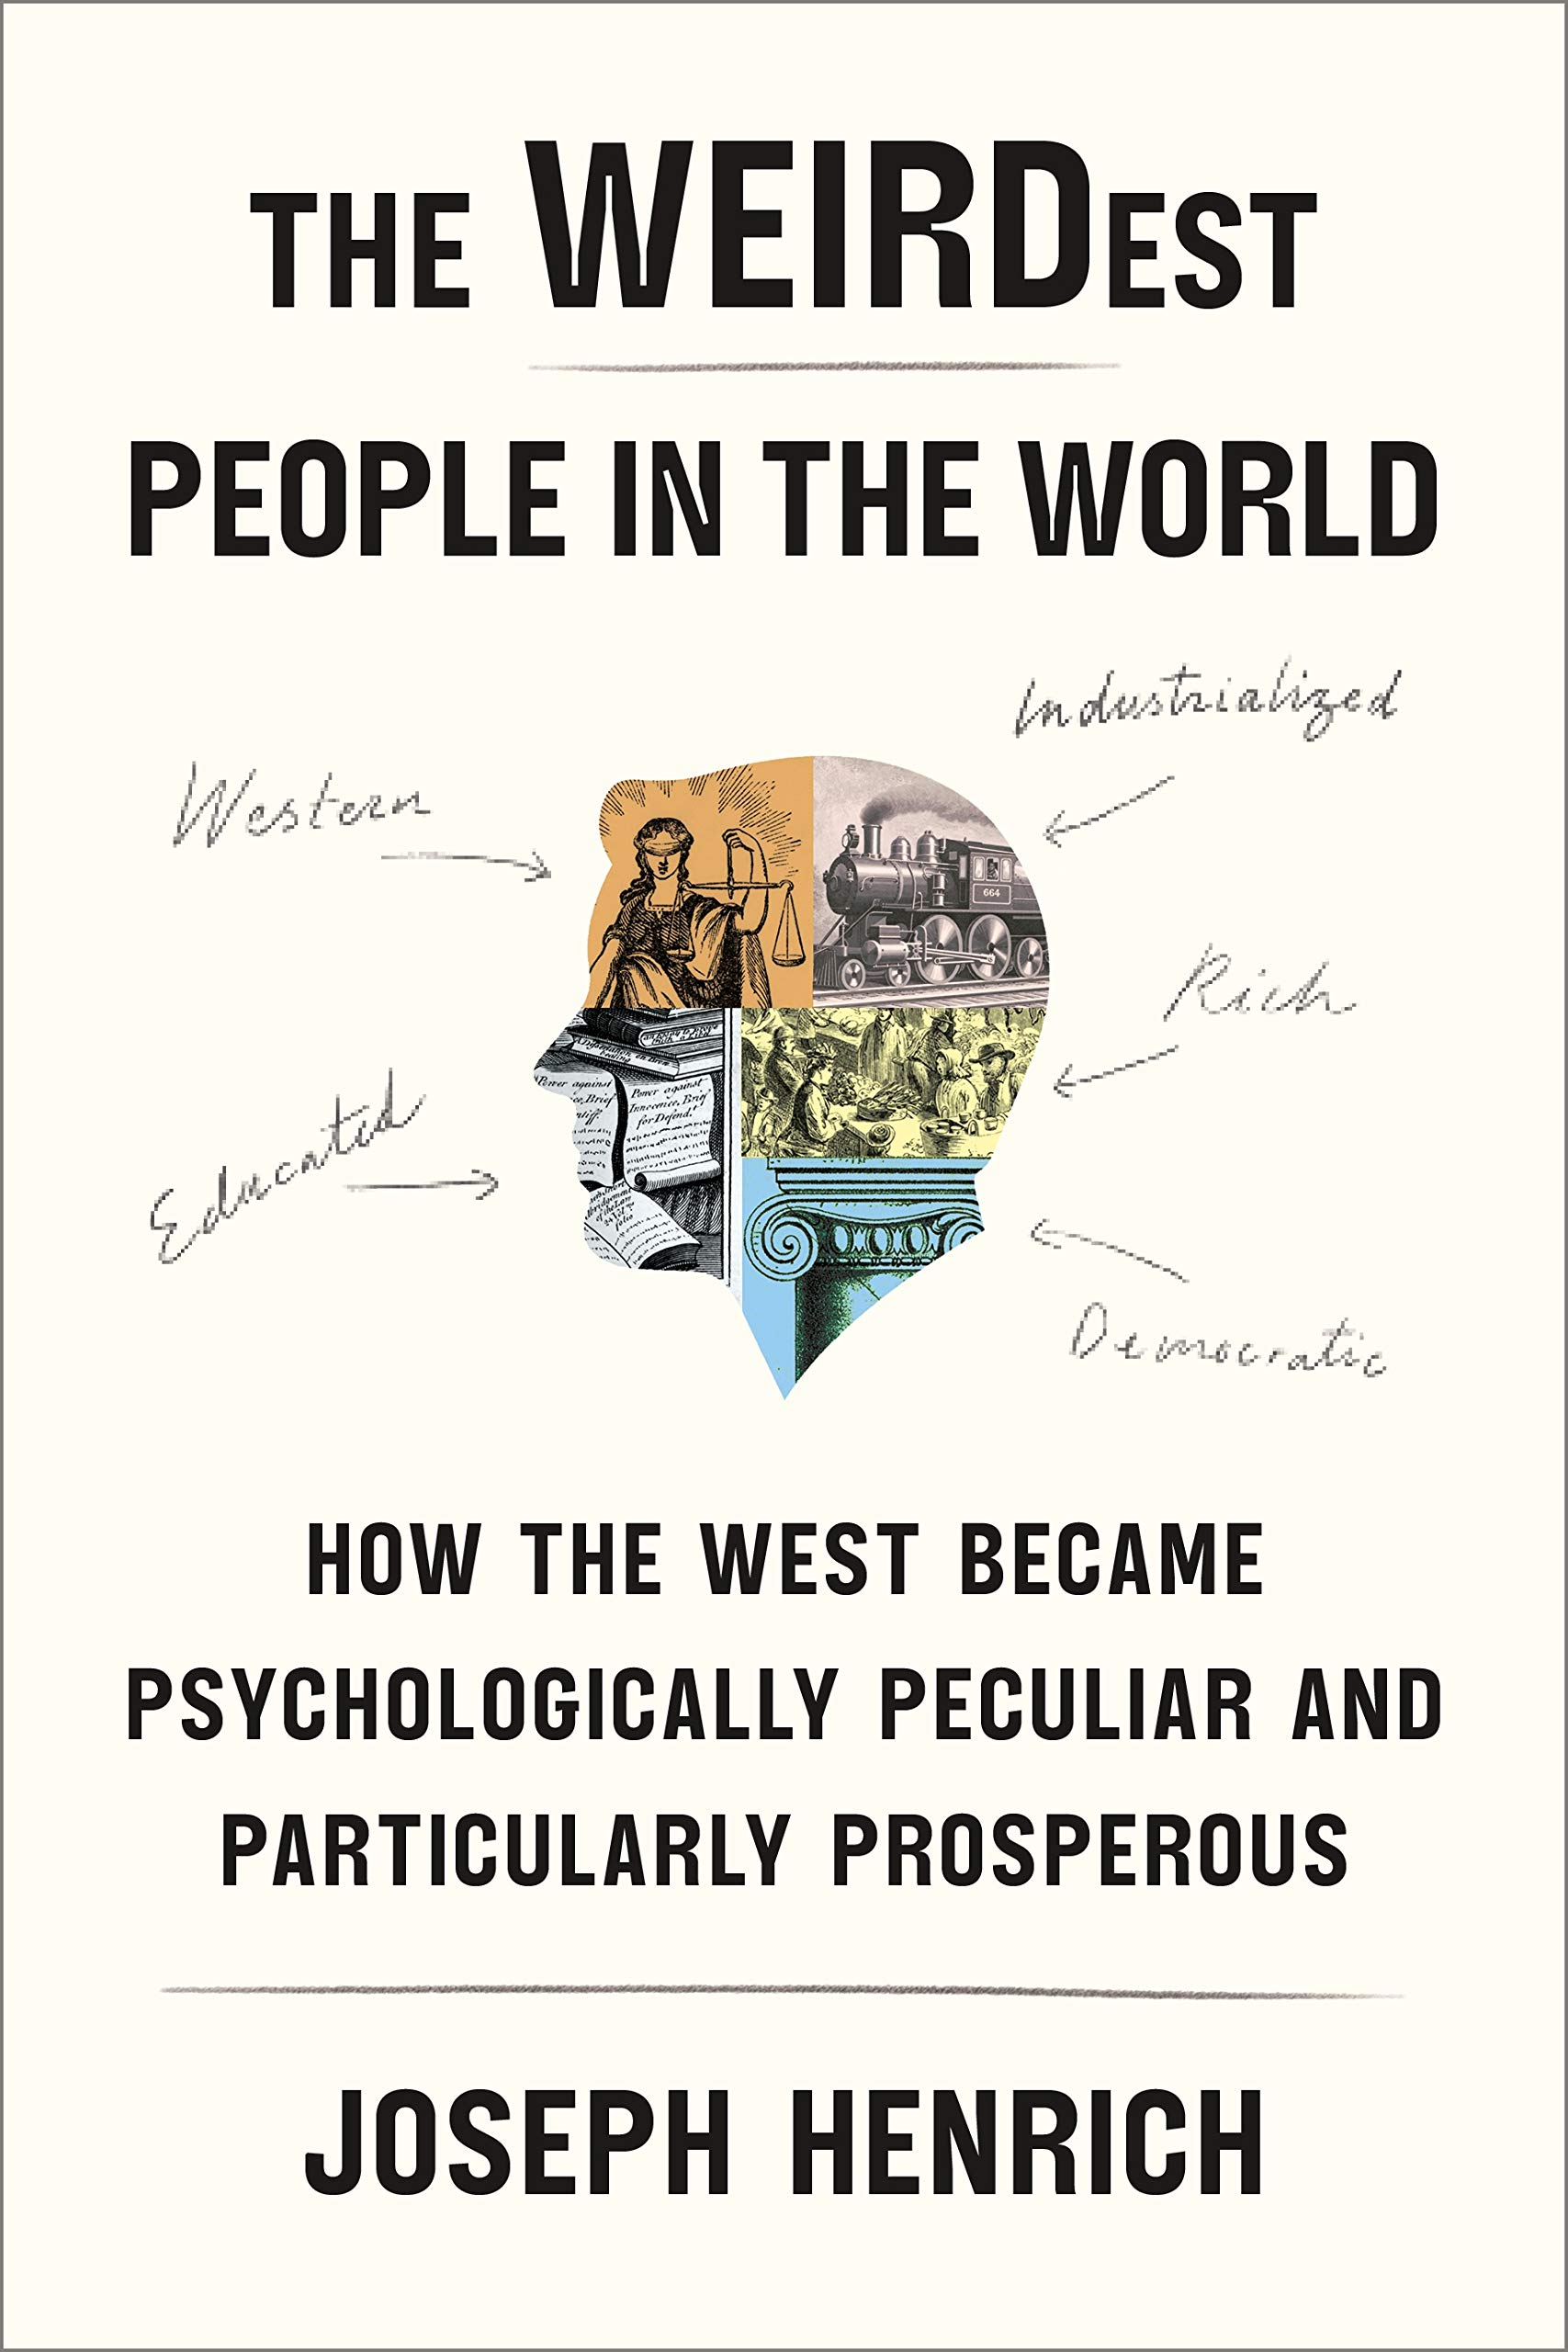 The Weirdest People in the World: How the West Became Psychologically  Peculiar and Particularly Prosperous: Amazon.es: Henrich, Joseph: Libros en  idiomas extranjeros